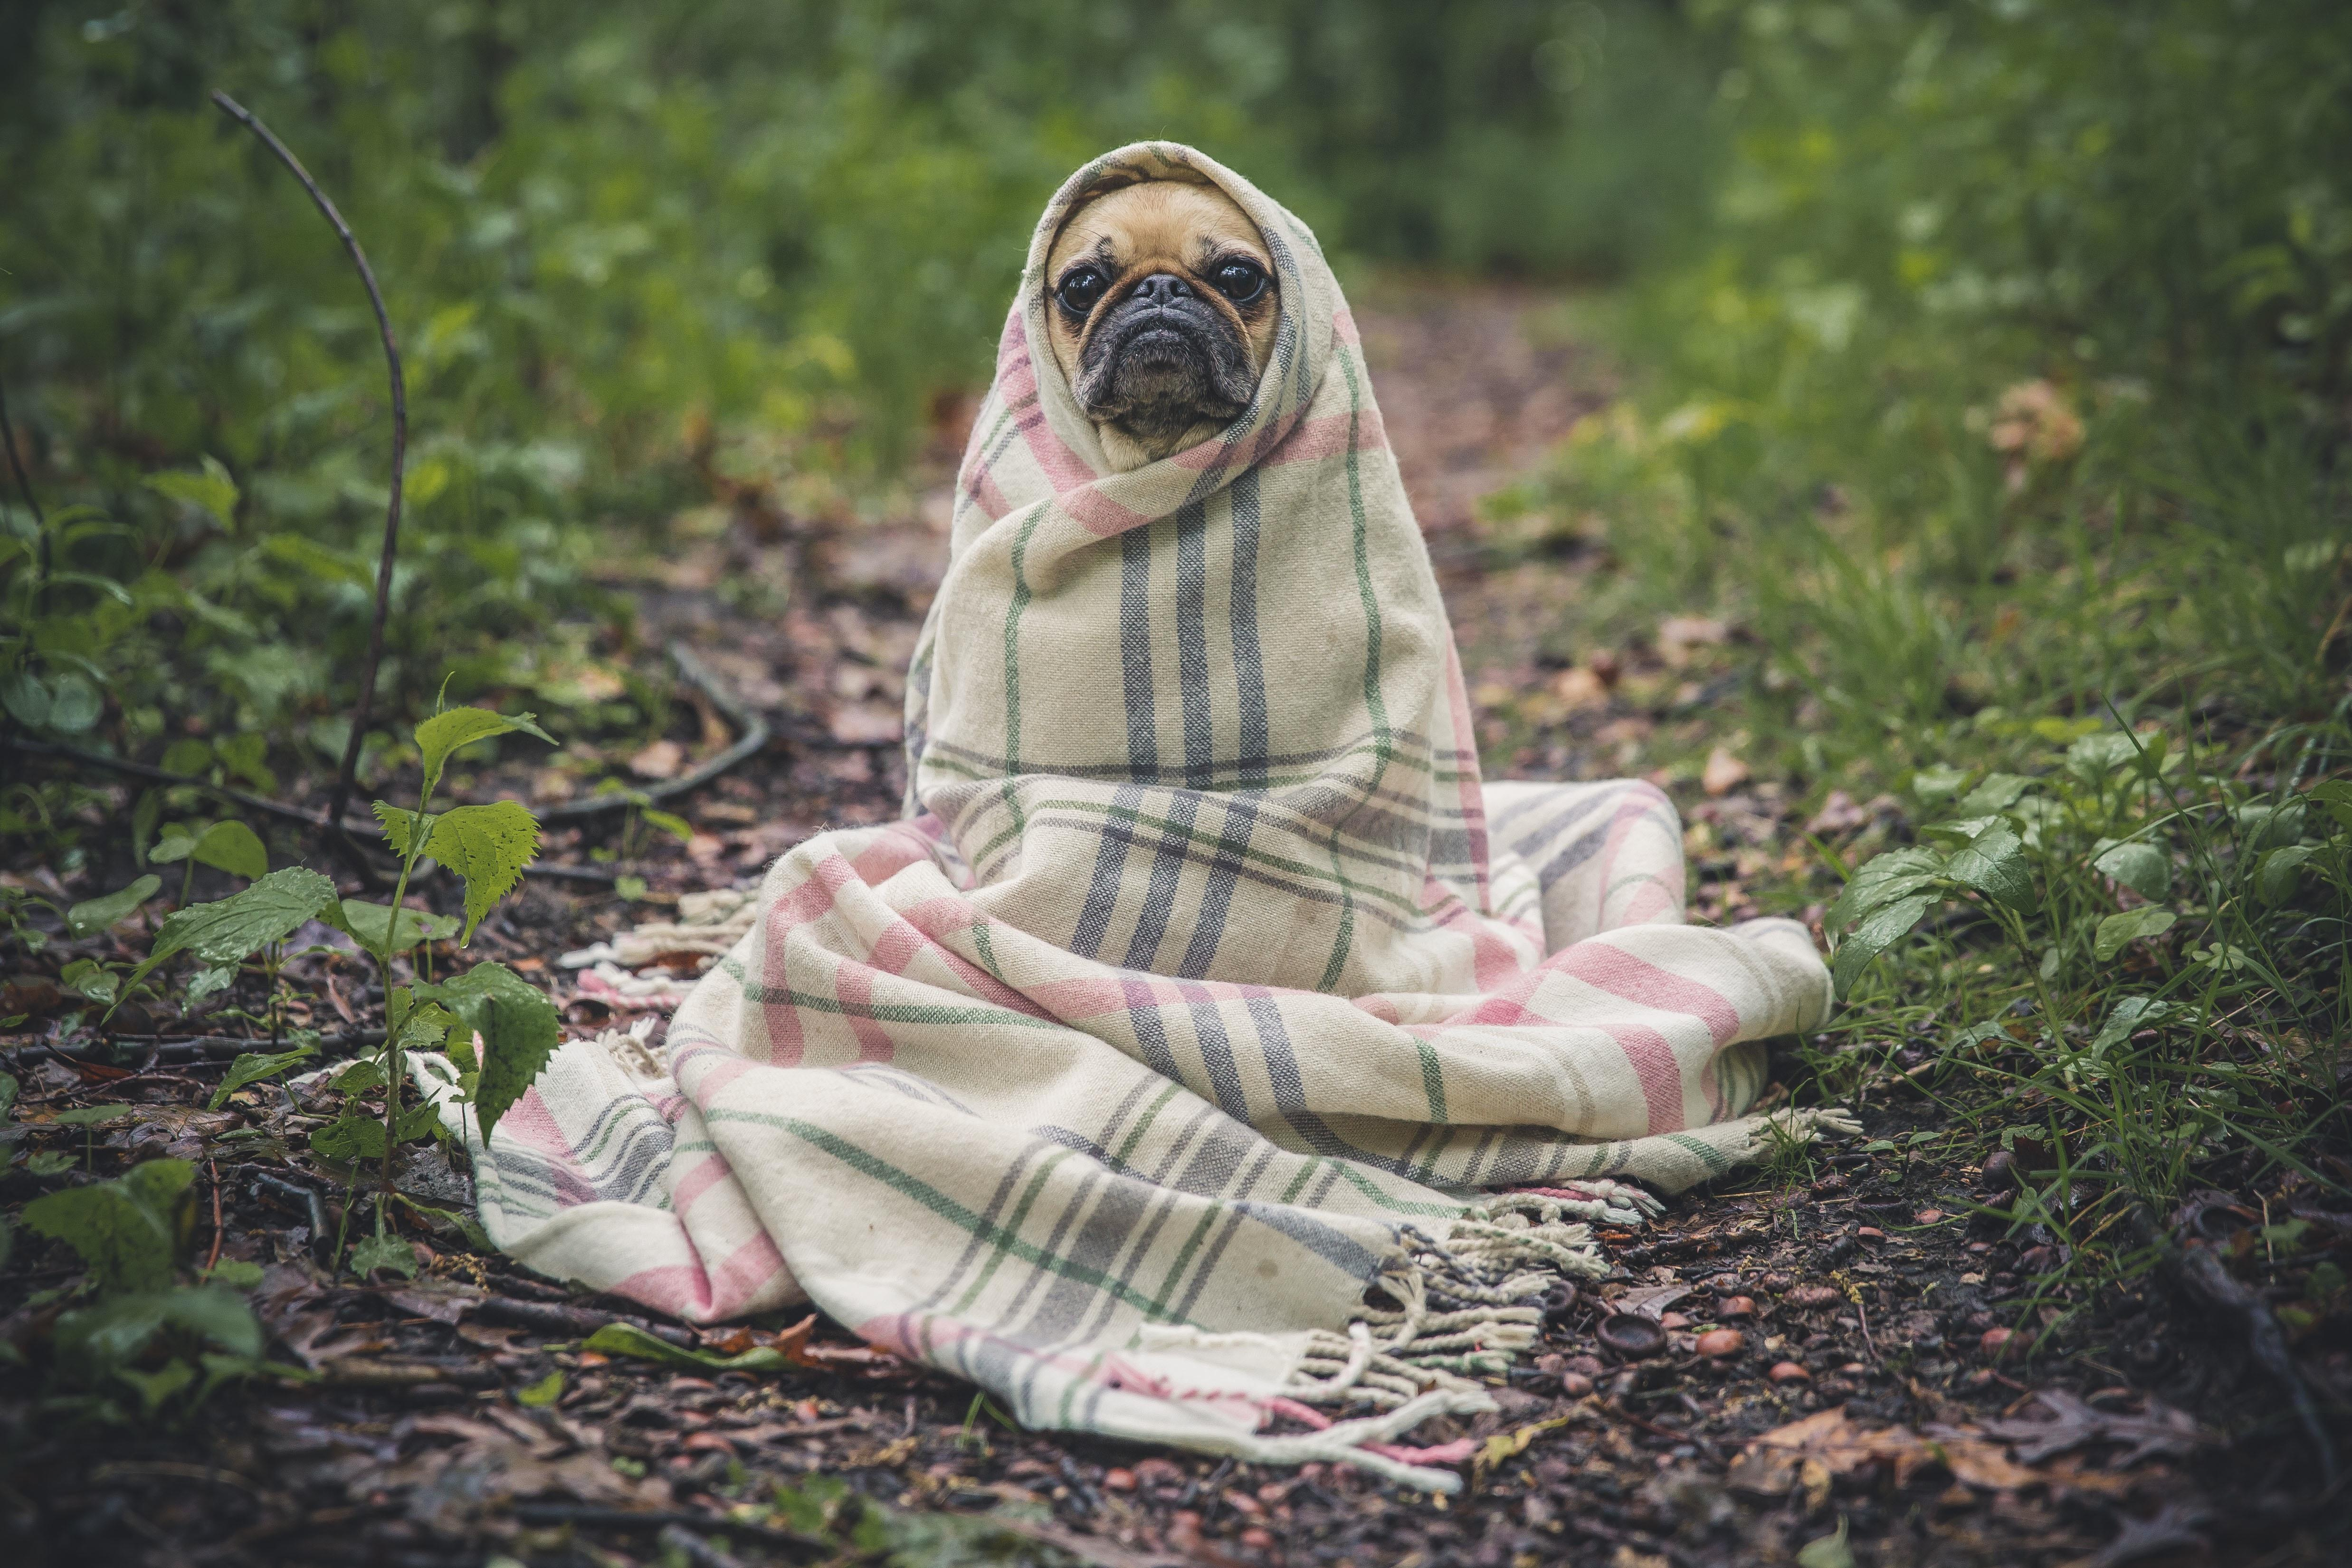 image of french bulldog wrapped in a cozy blanket.